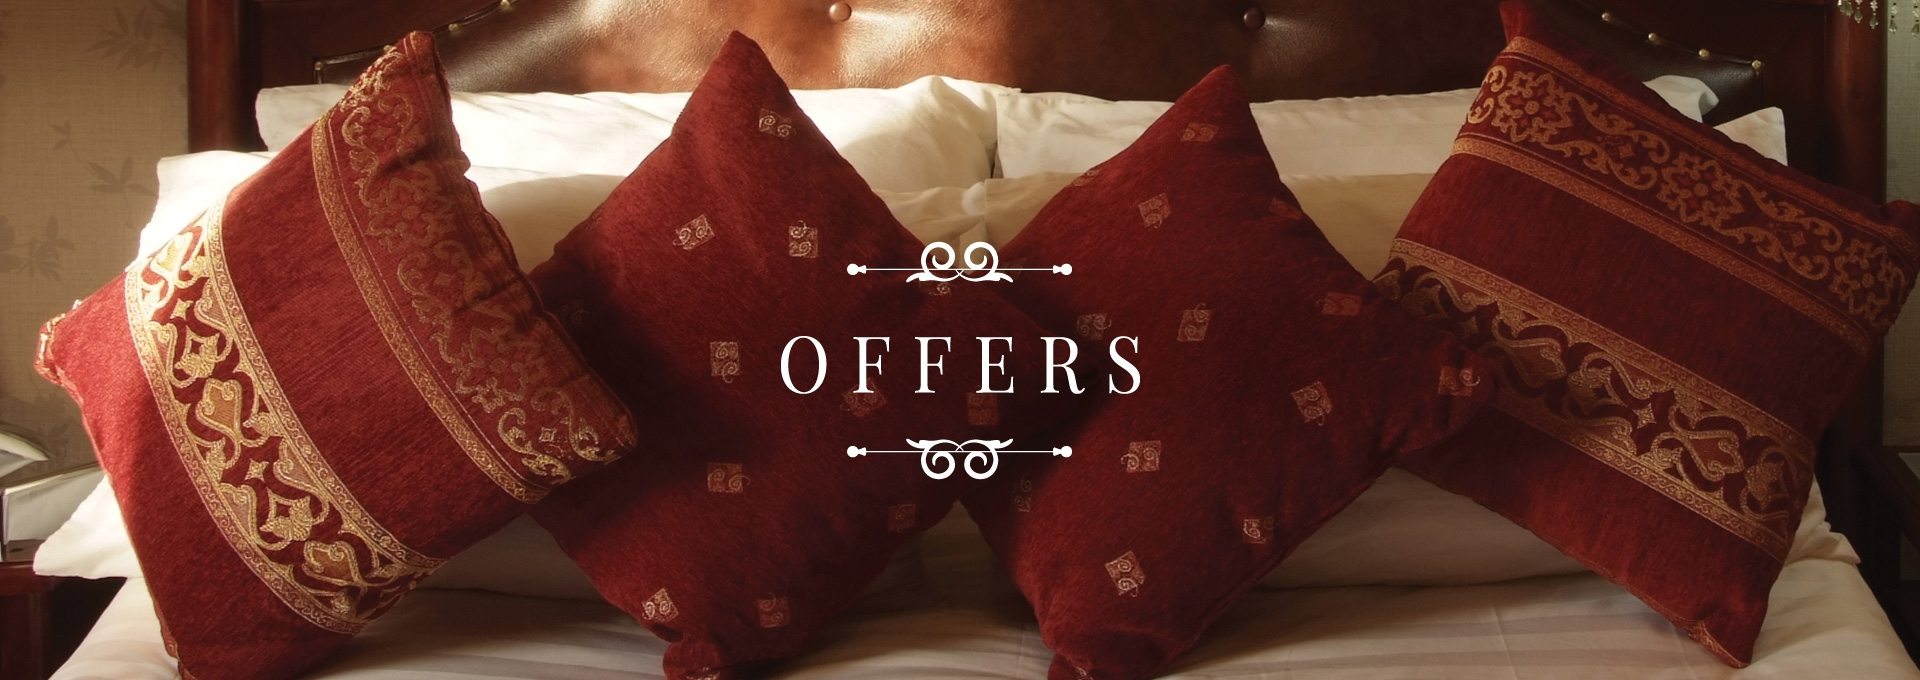 Offers at the Durrant House Hotel